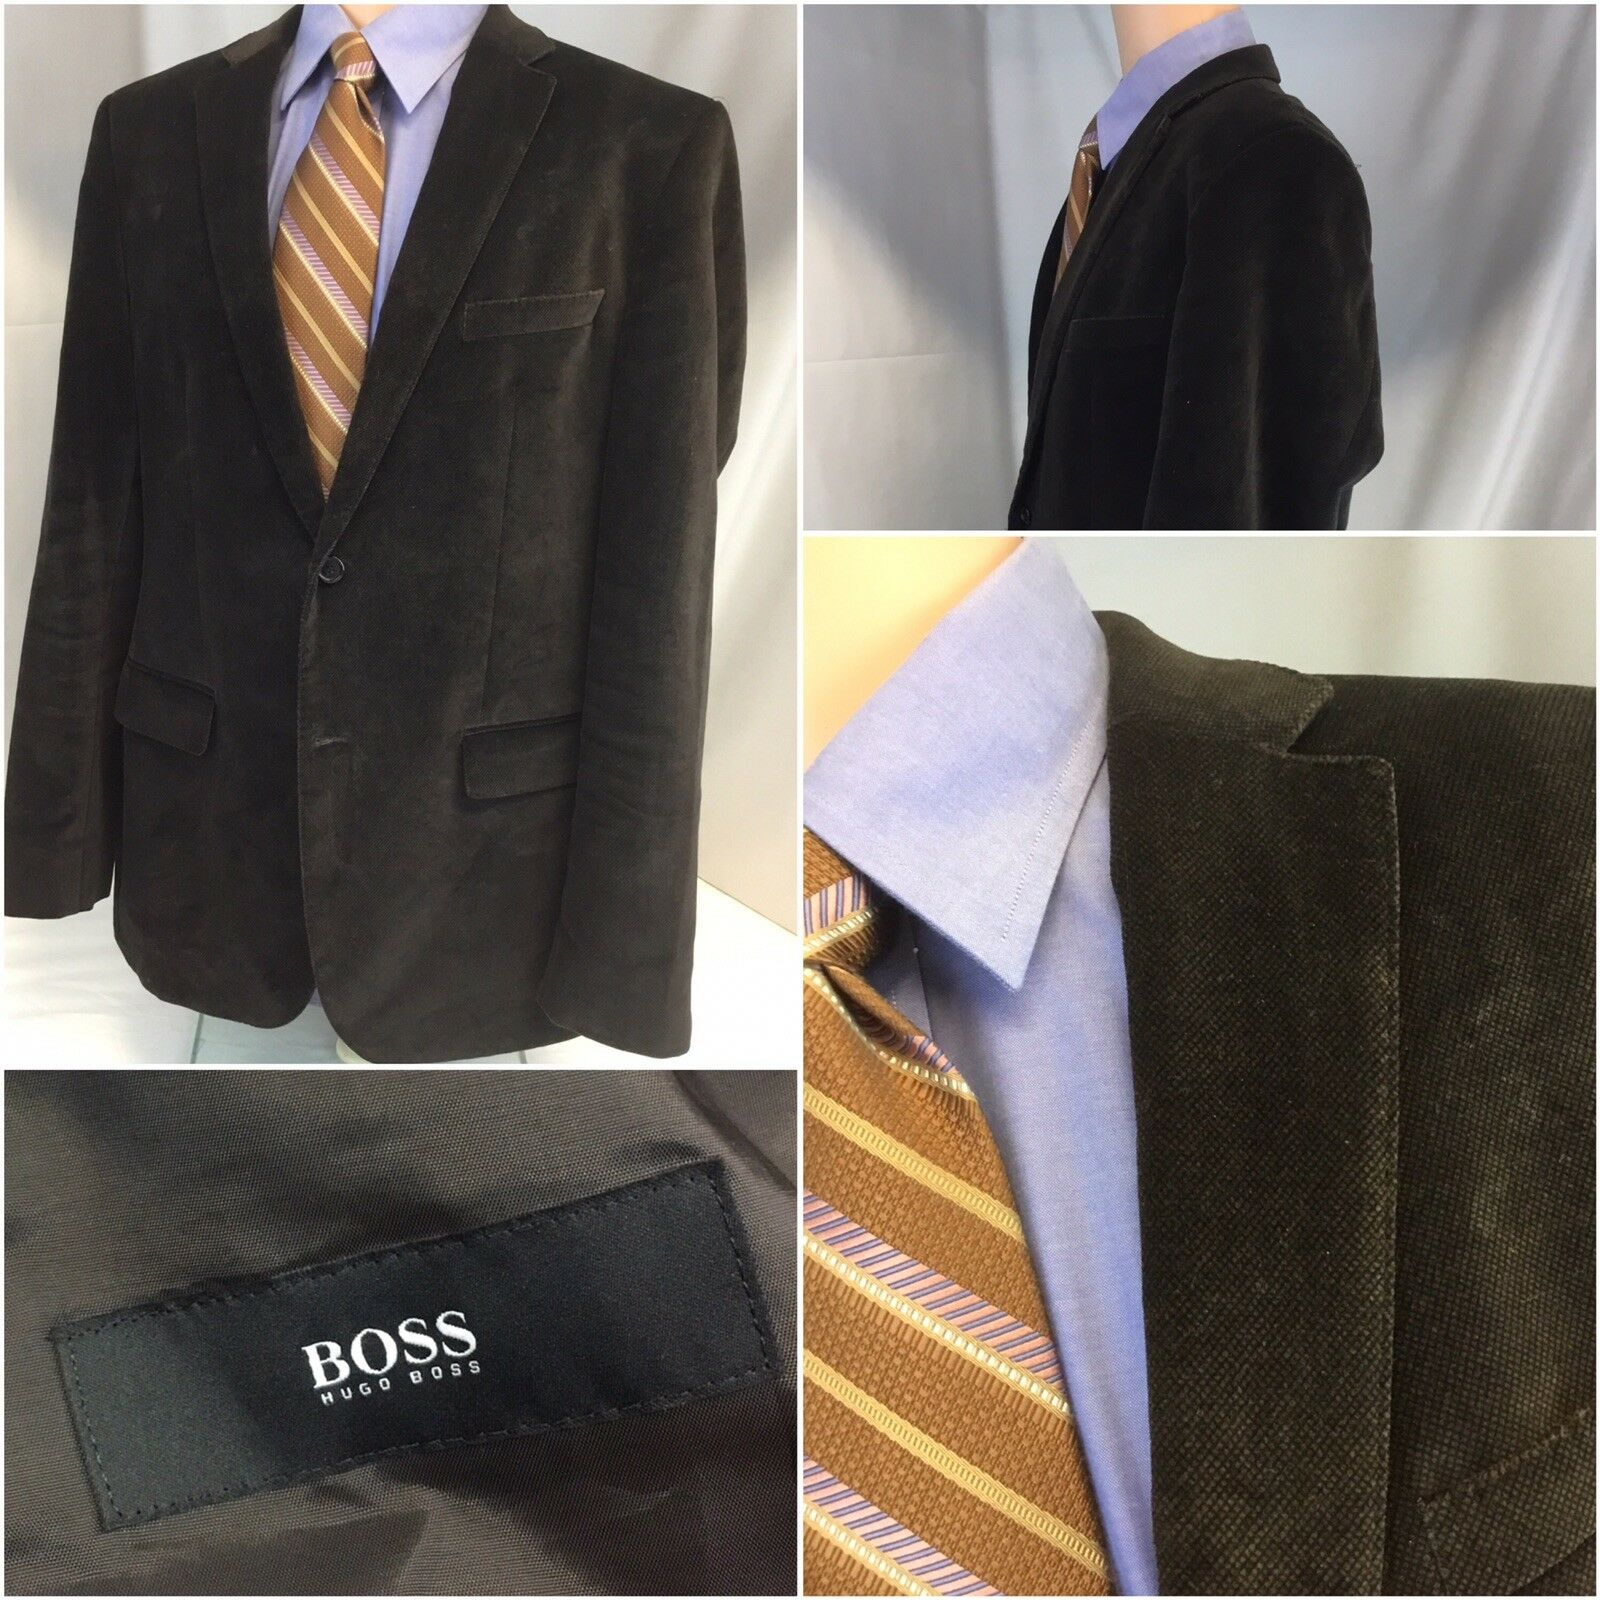 Hugo Boss Blazer 42R Braun Cord Cotton 2b 1v Turkey 42 R Worn Once YGI J8-201